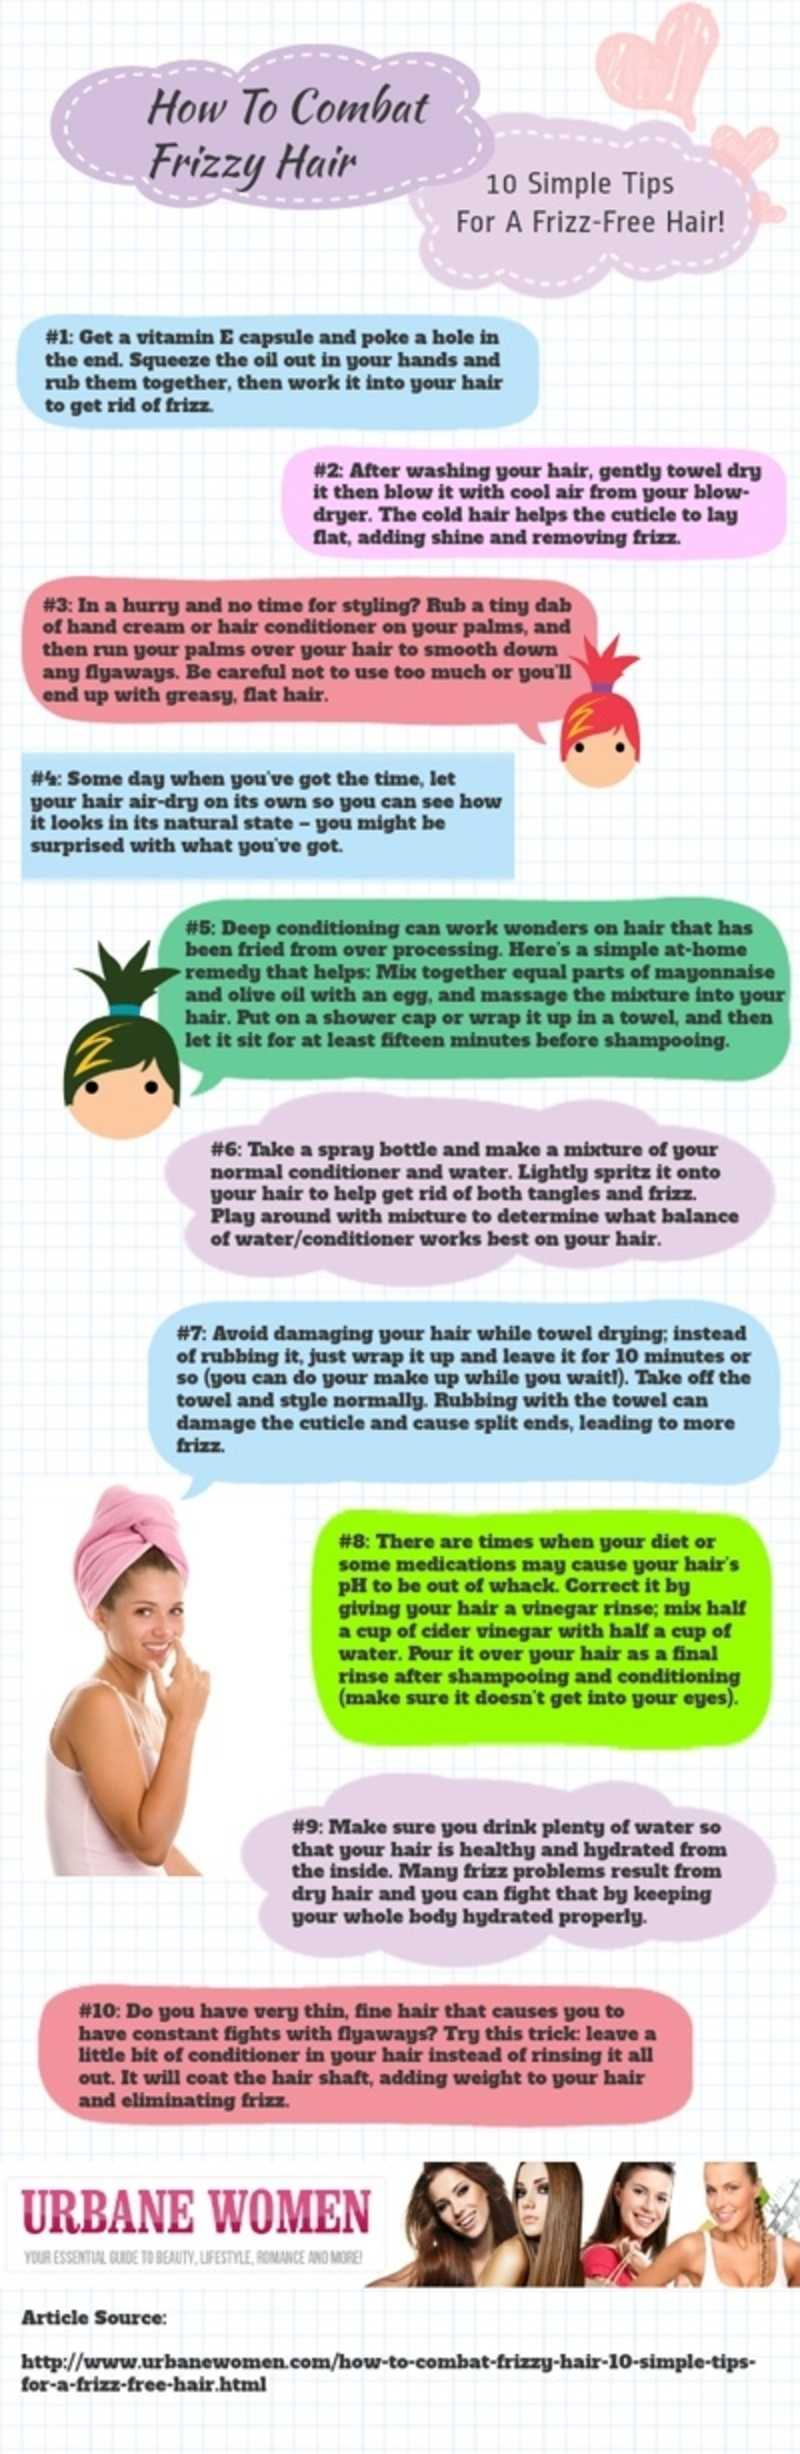 Simple Tips For Frizz-Free Hair